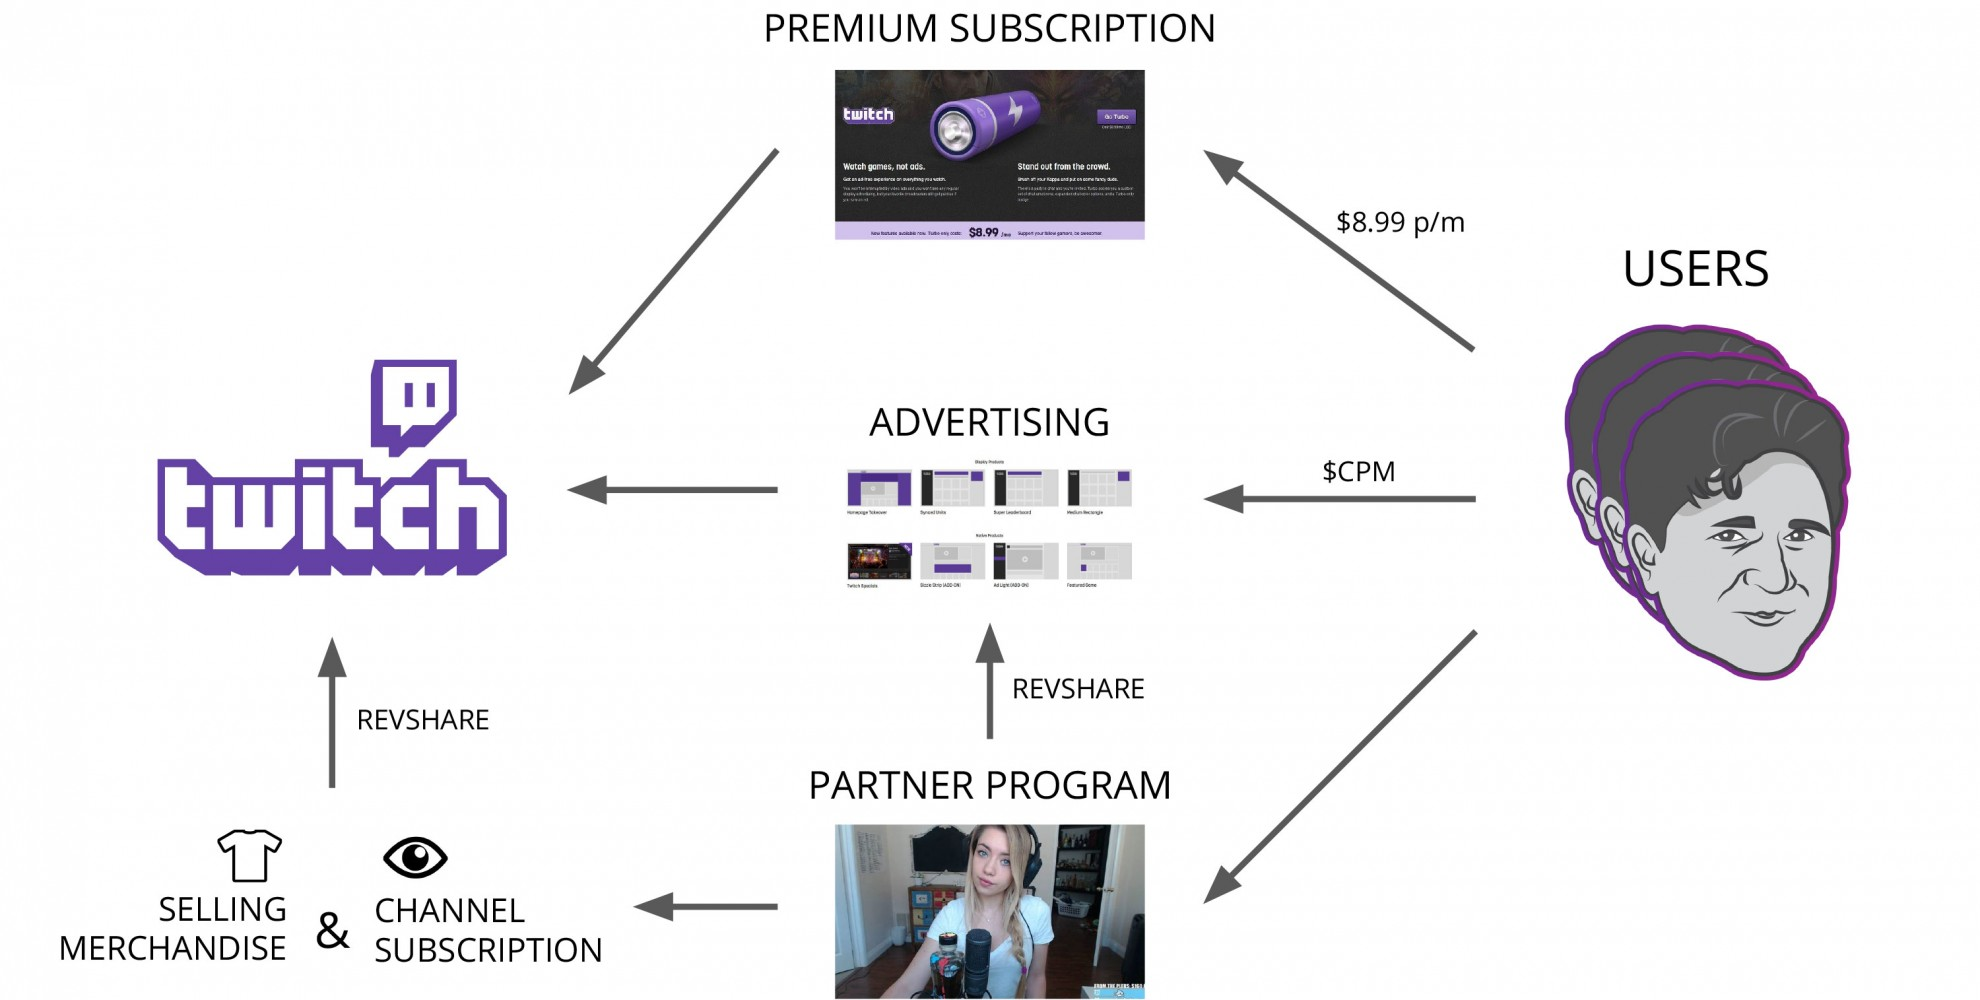 How does Twitch TV make money? | Hacking Revenue